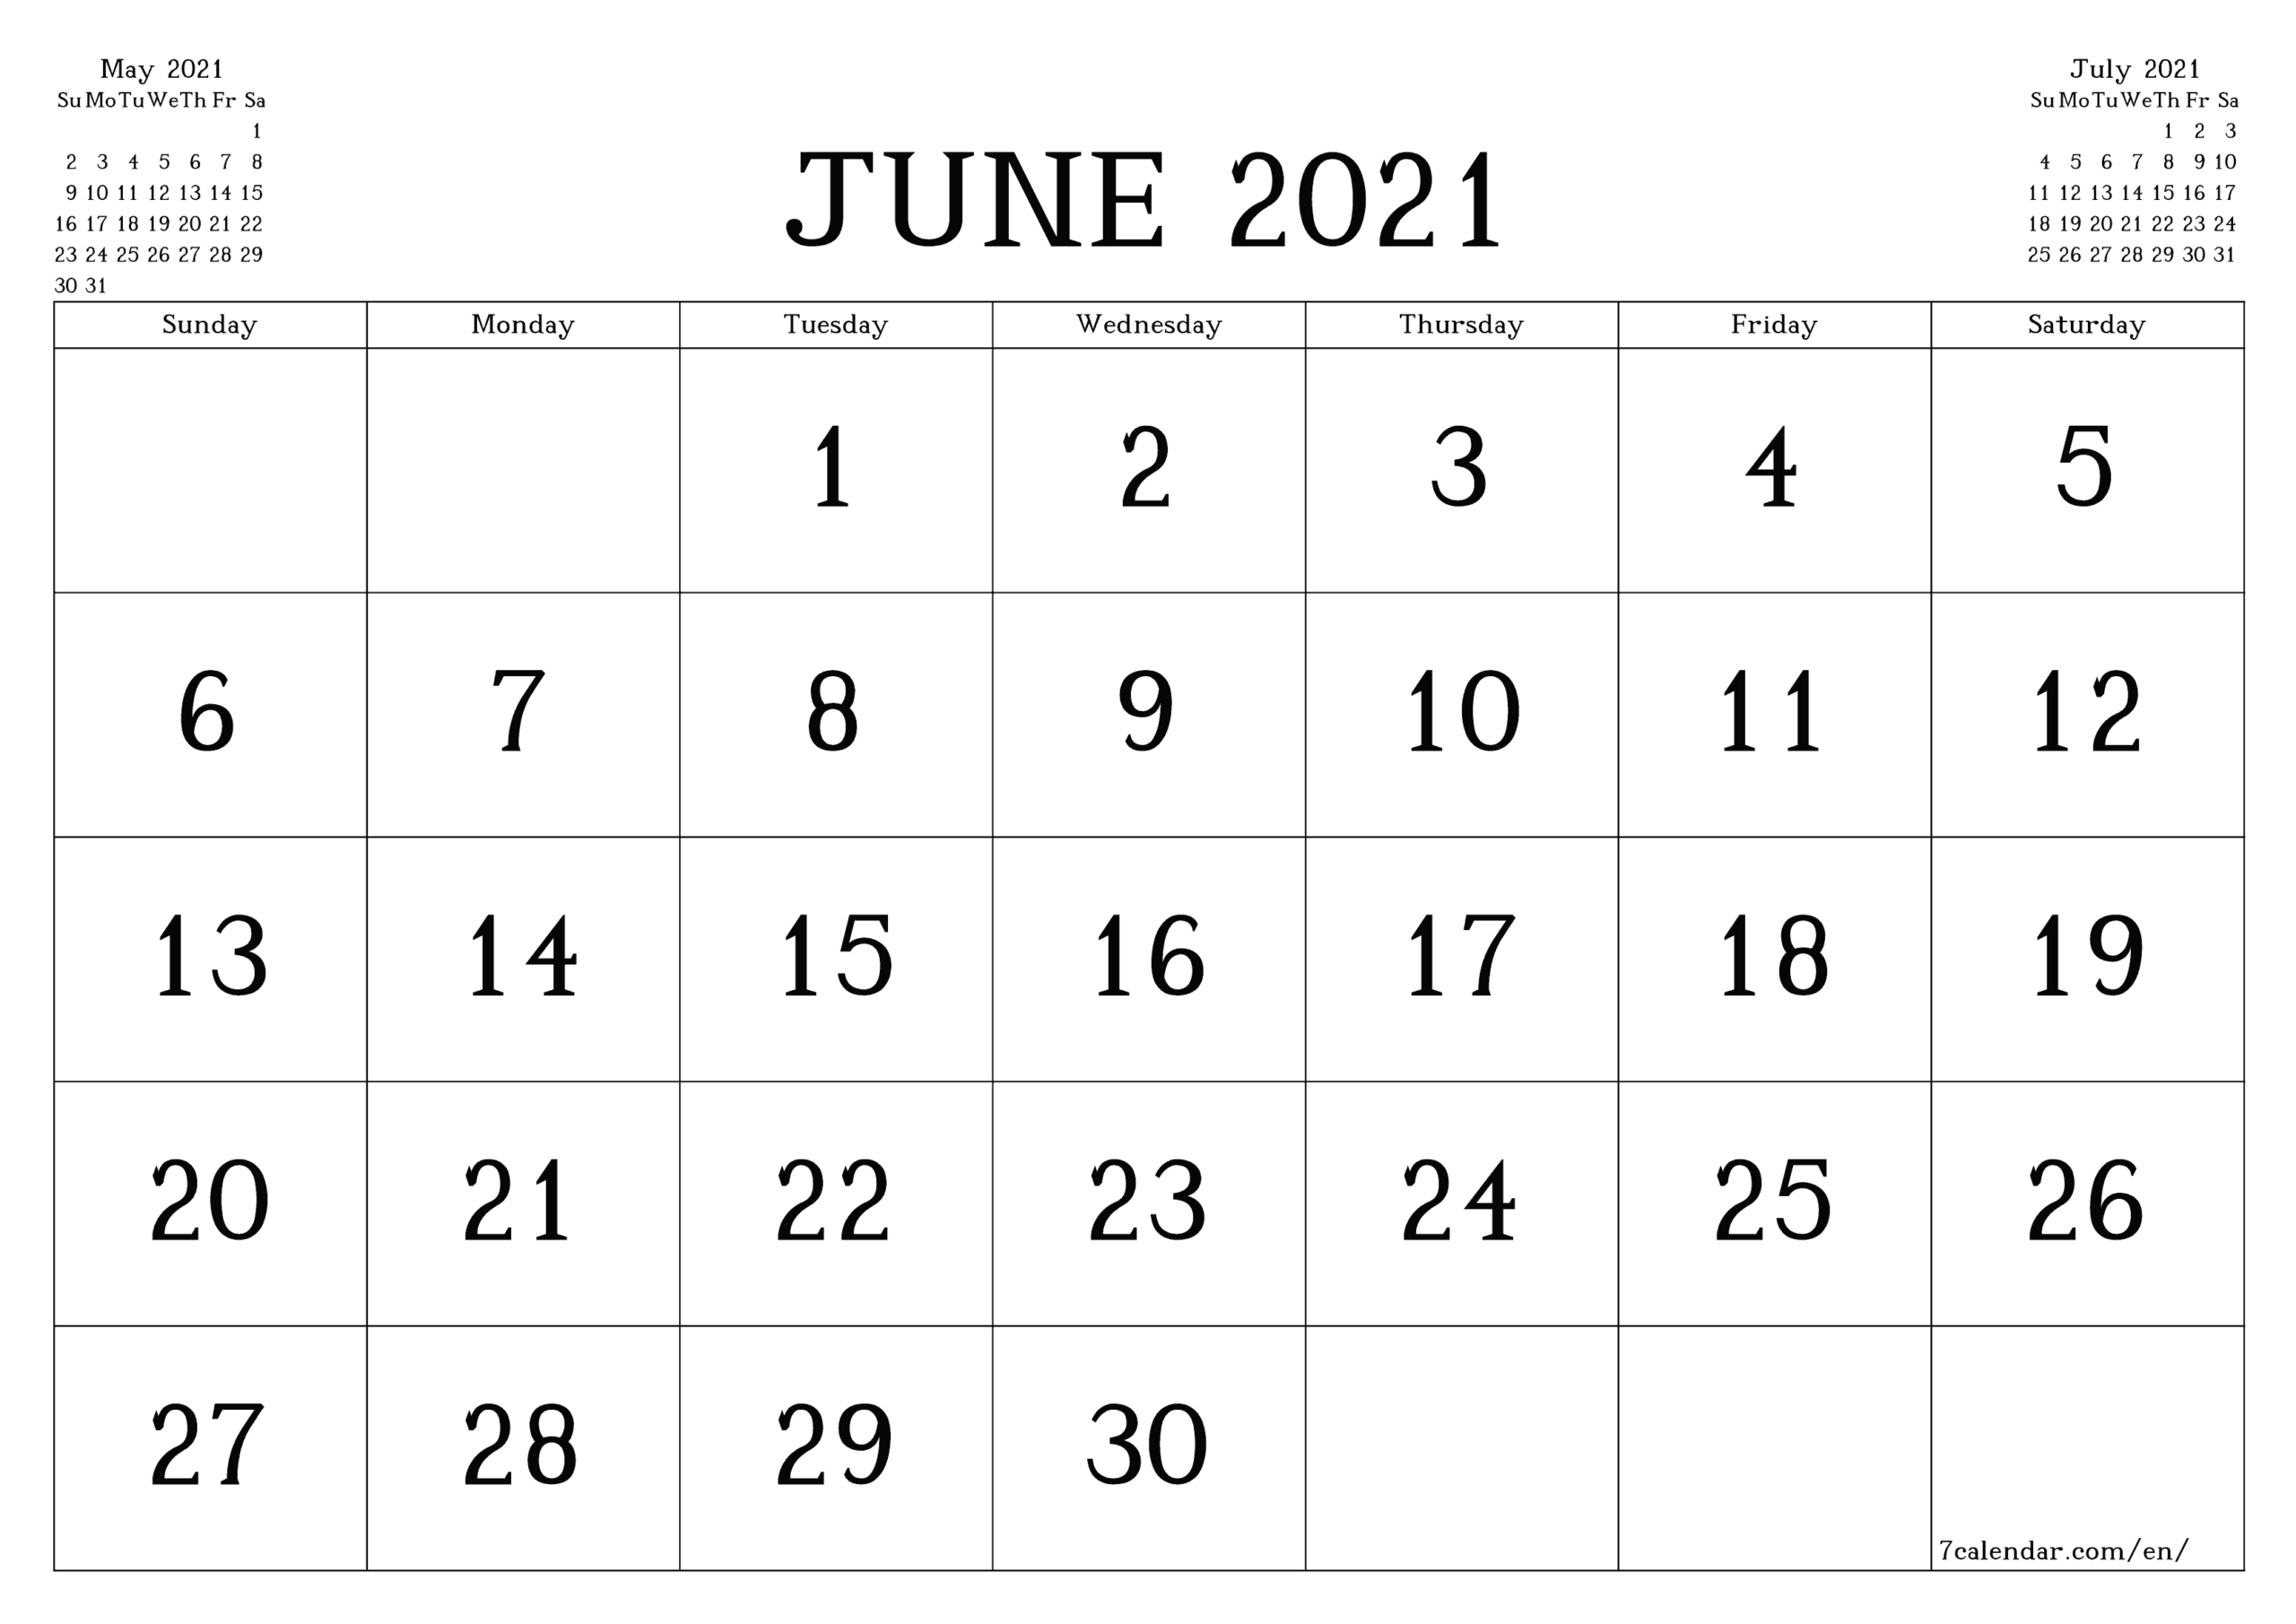 Free Printable Blank Monthly Calendar And Planner For June within 3 Month Printed A3 Calendar 2021